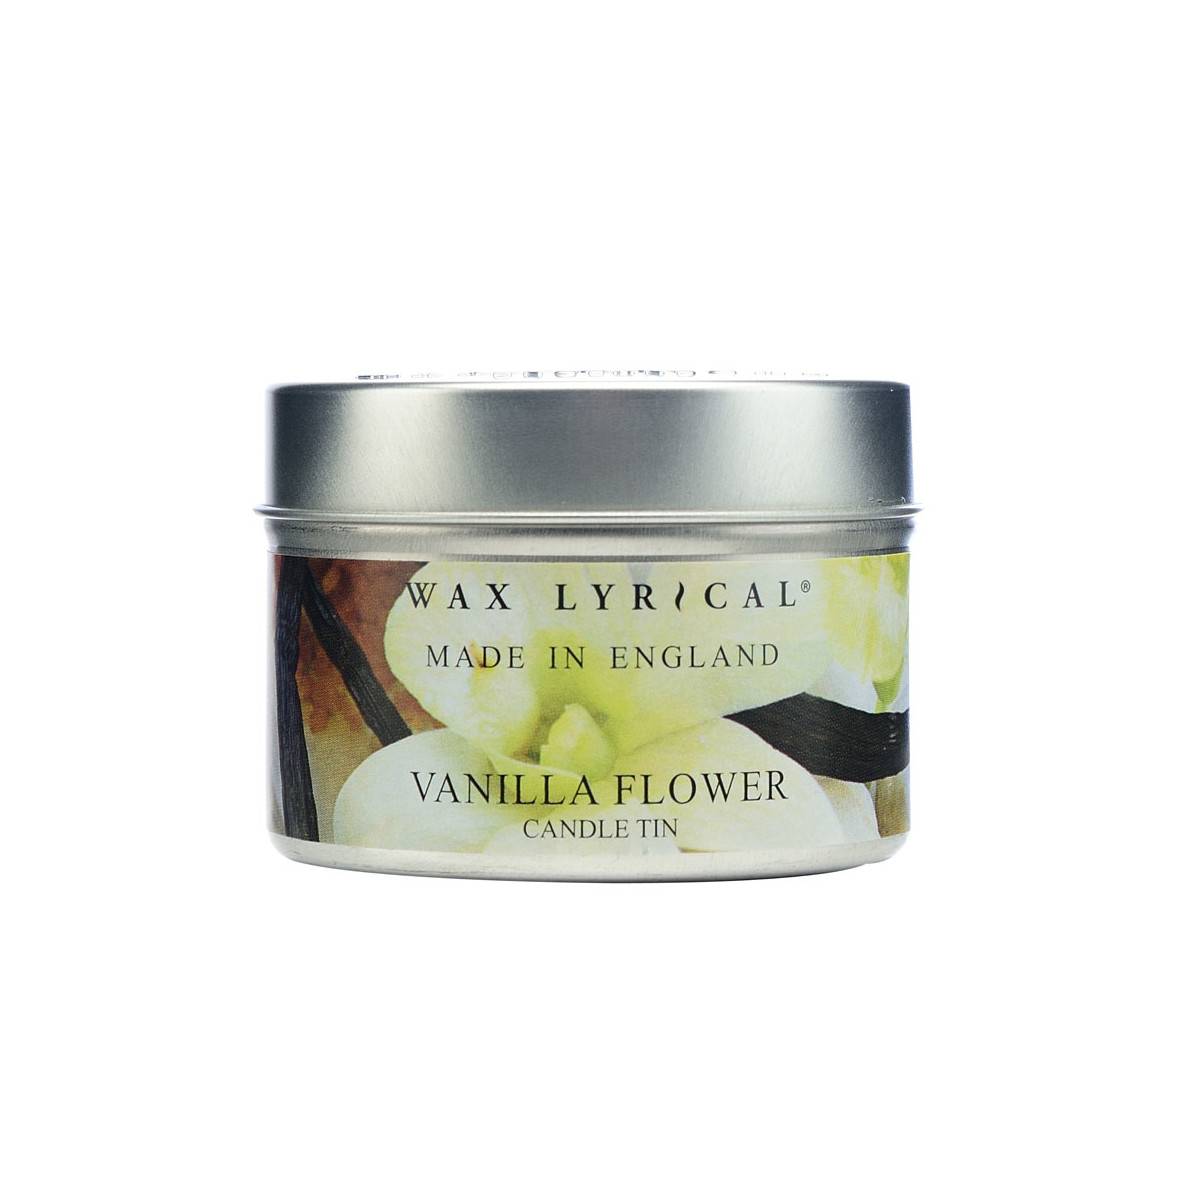 Wax Lyrical Vanilla Flower Scented Candle - No Near Me | NearSt Find